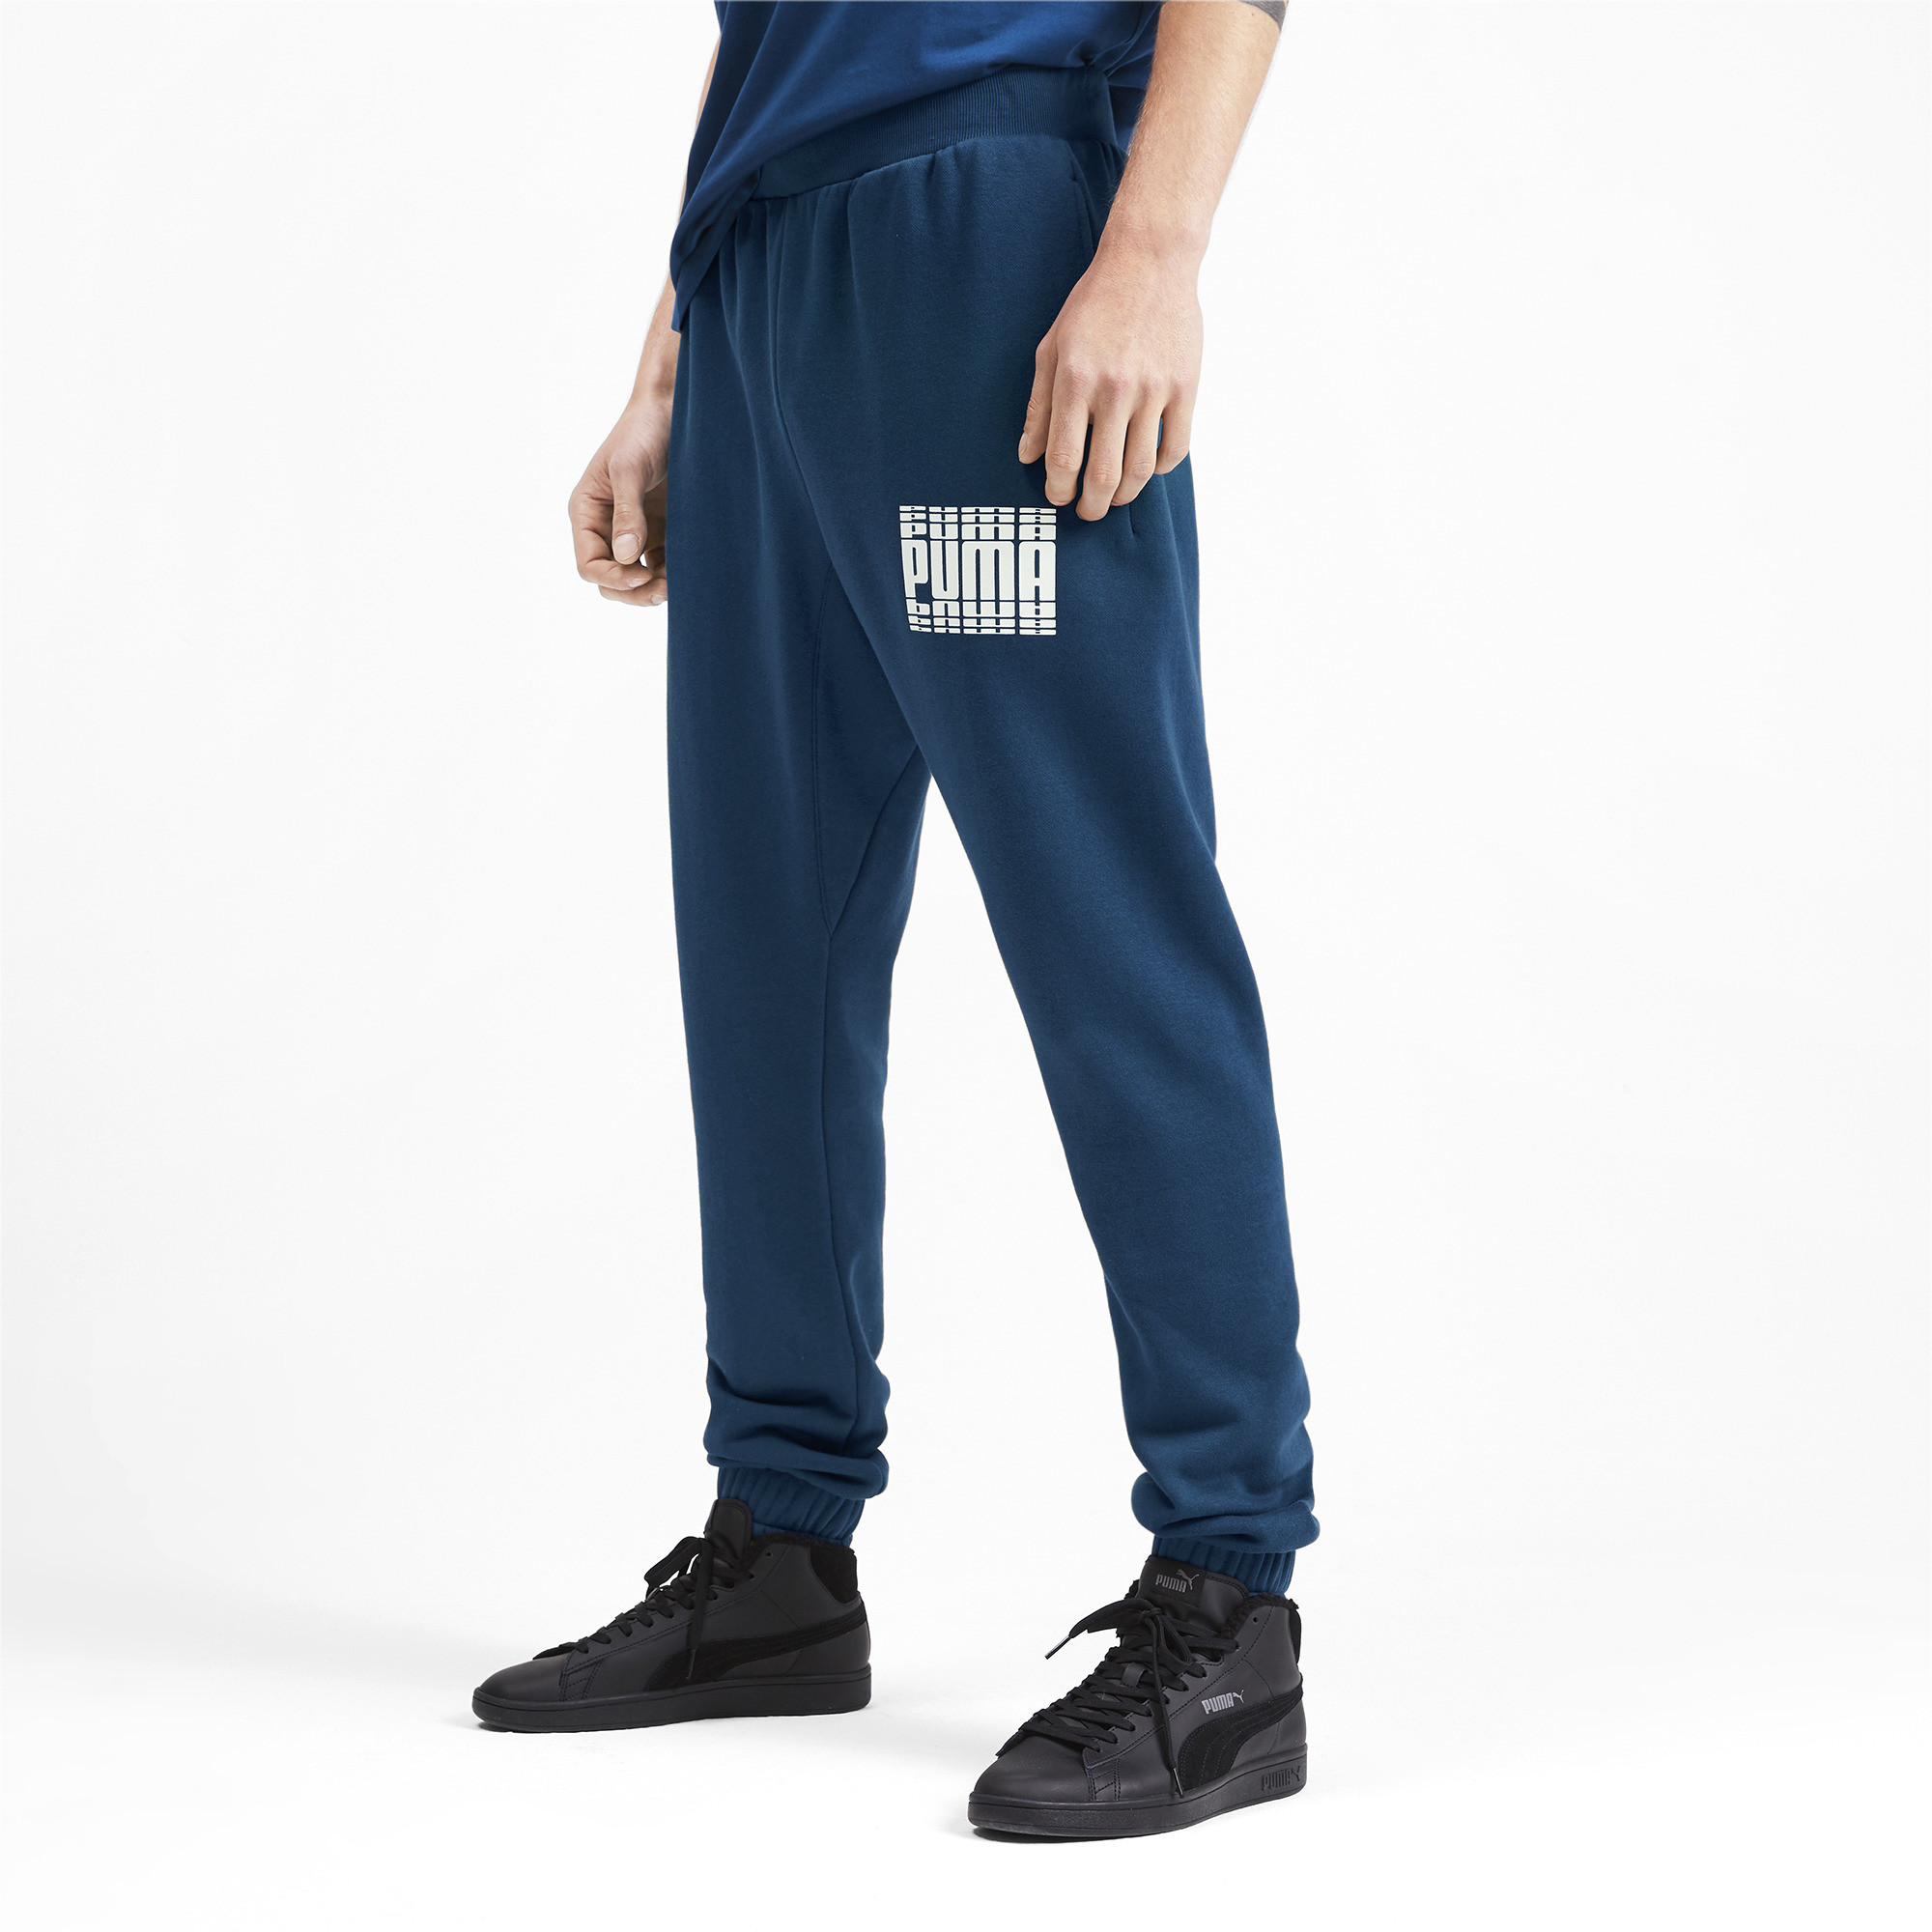 PUMA-Rebel-Bold-Men-039-s-Sweatpants-Men-Knitted-Pants-Basics thumbnail 4